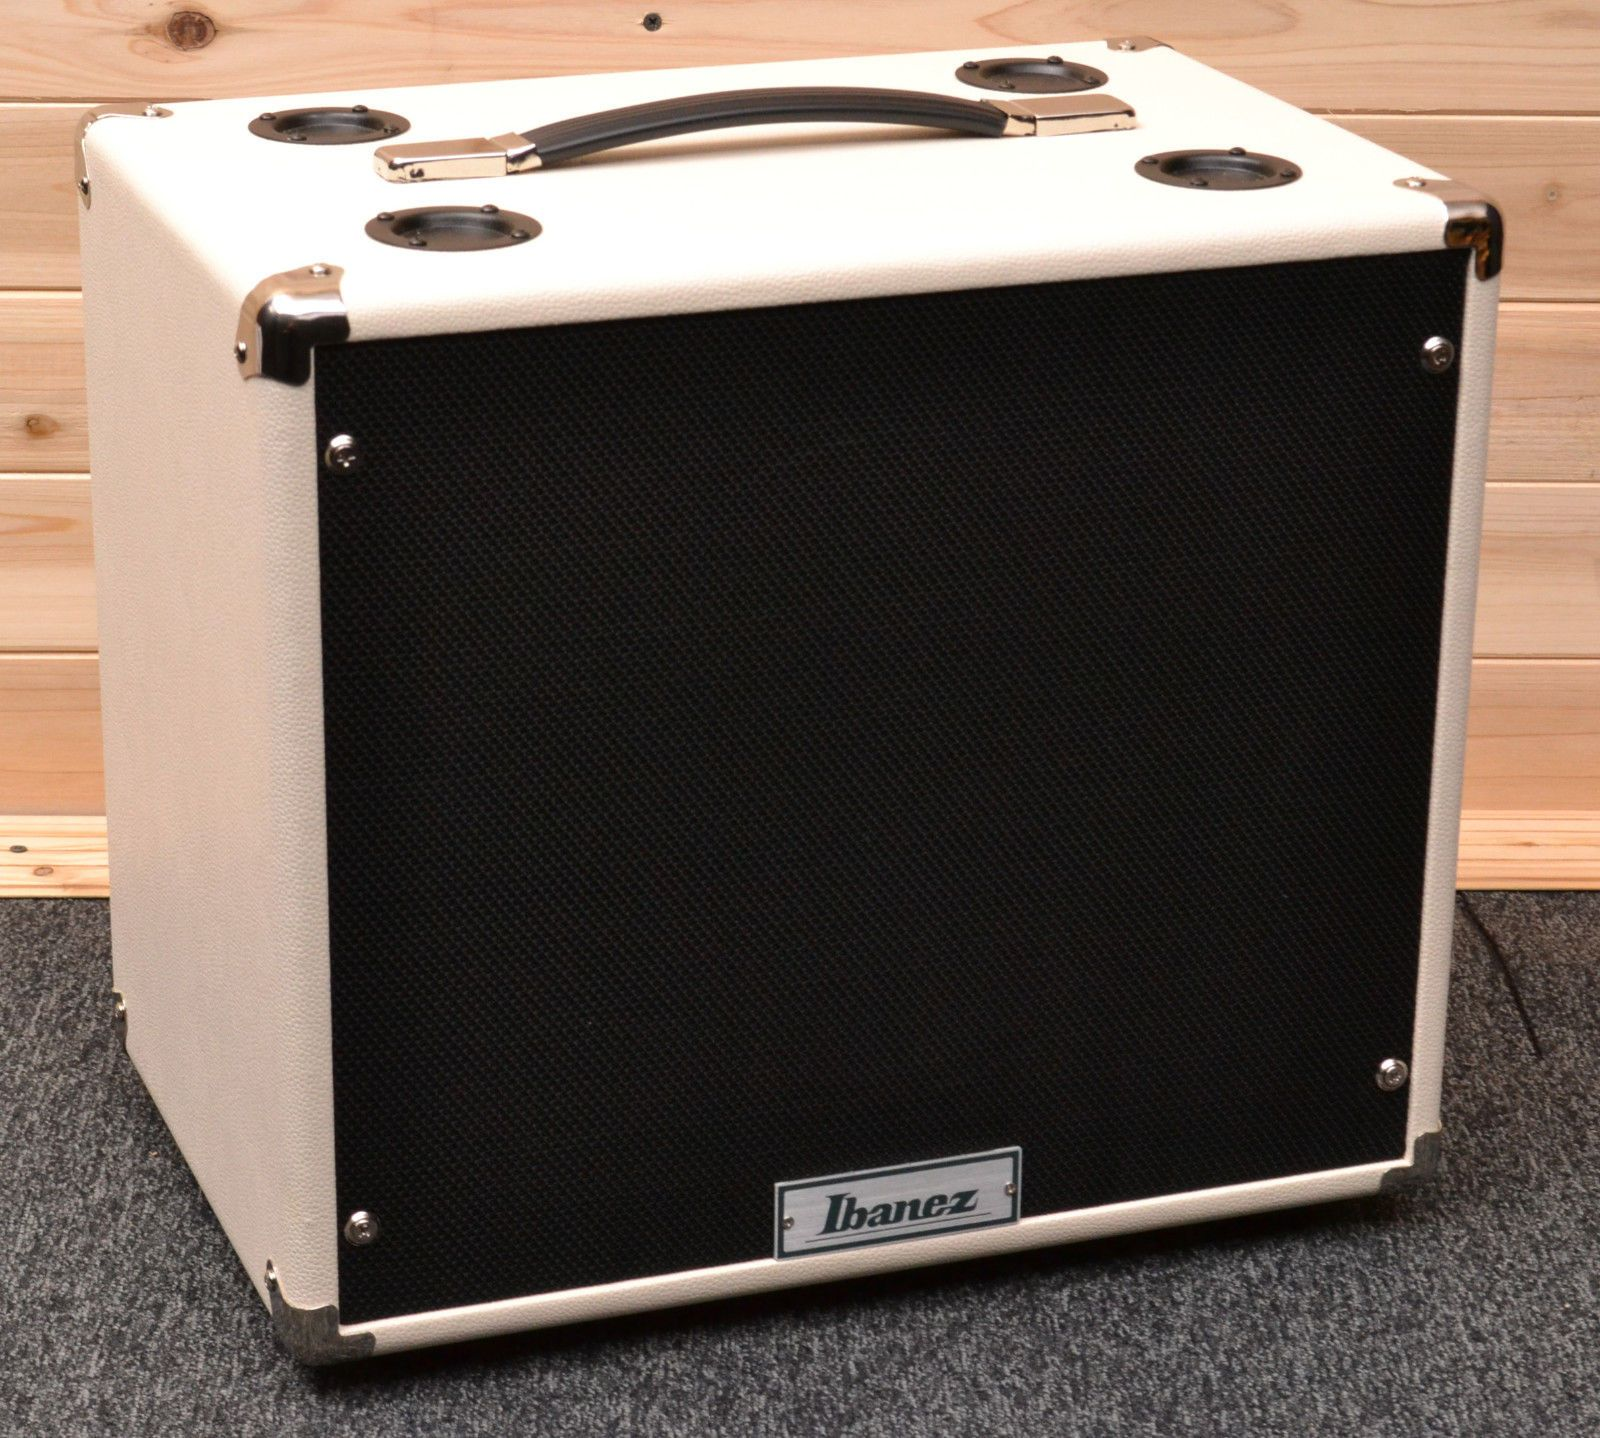 Ibanez Tsa112c Tube Screamer 80w 1x12 Guitar Amp Cabinet White Guitar Amp Diy Cabinets Guitar